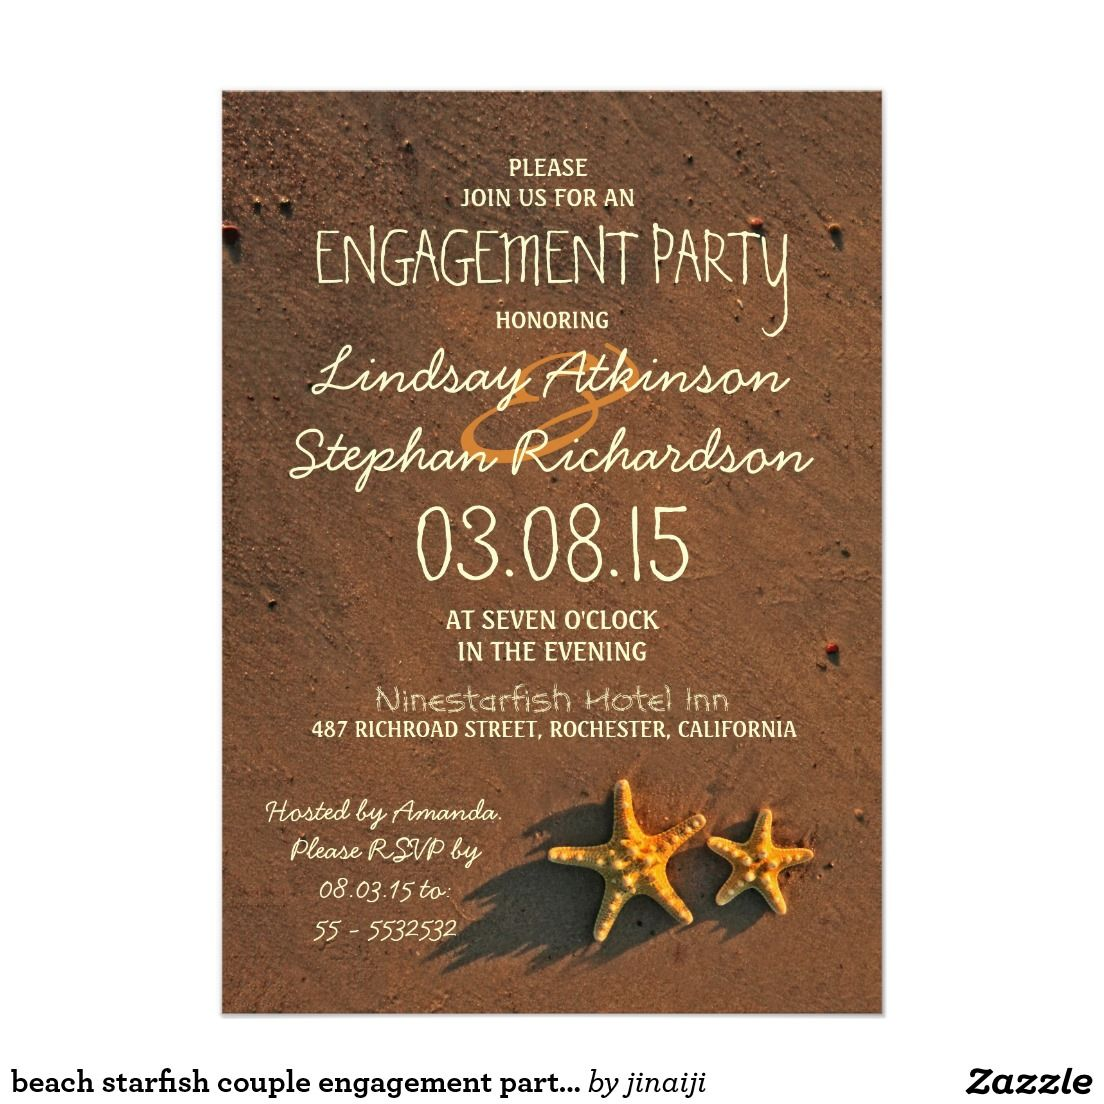 Wedding decorations beach december 2018 Beach starfish couple engagement party invitations  Engagement